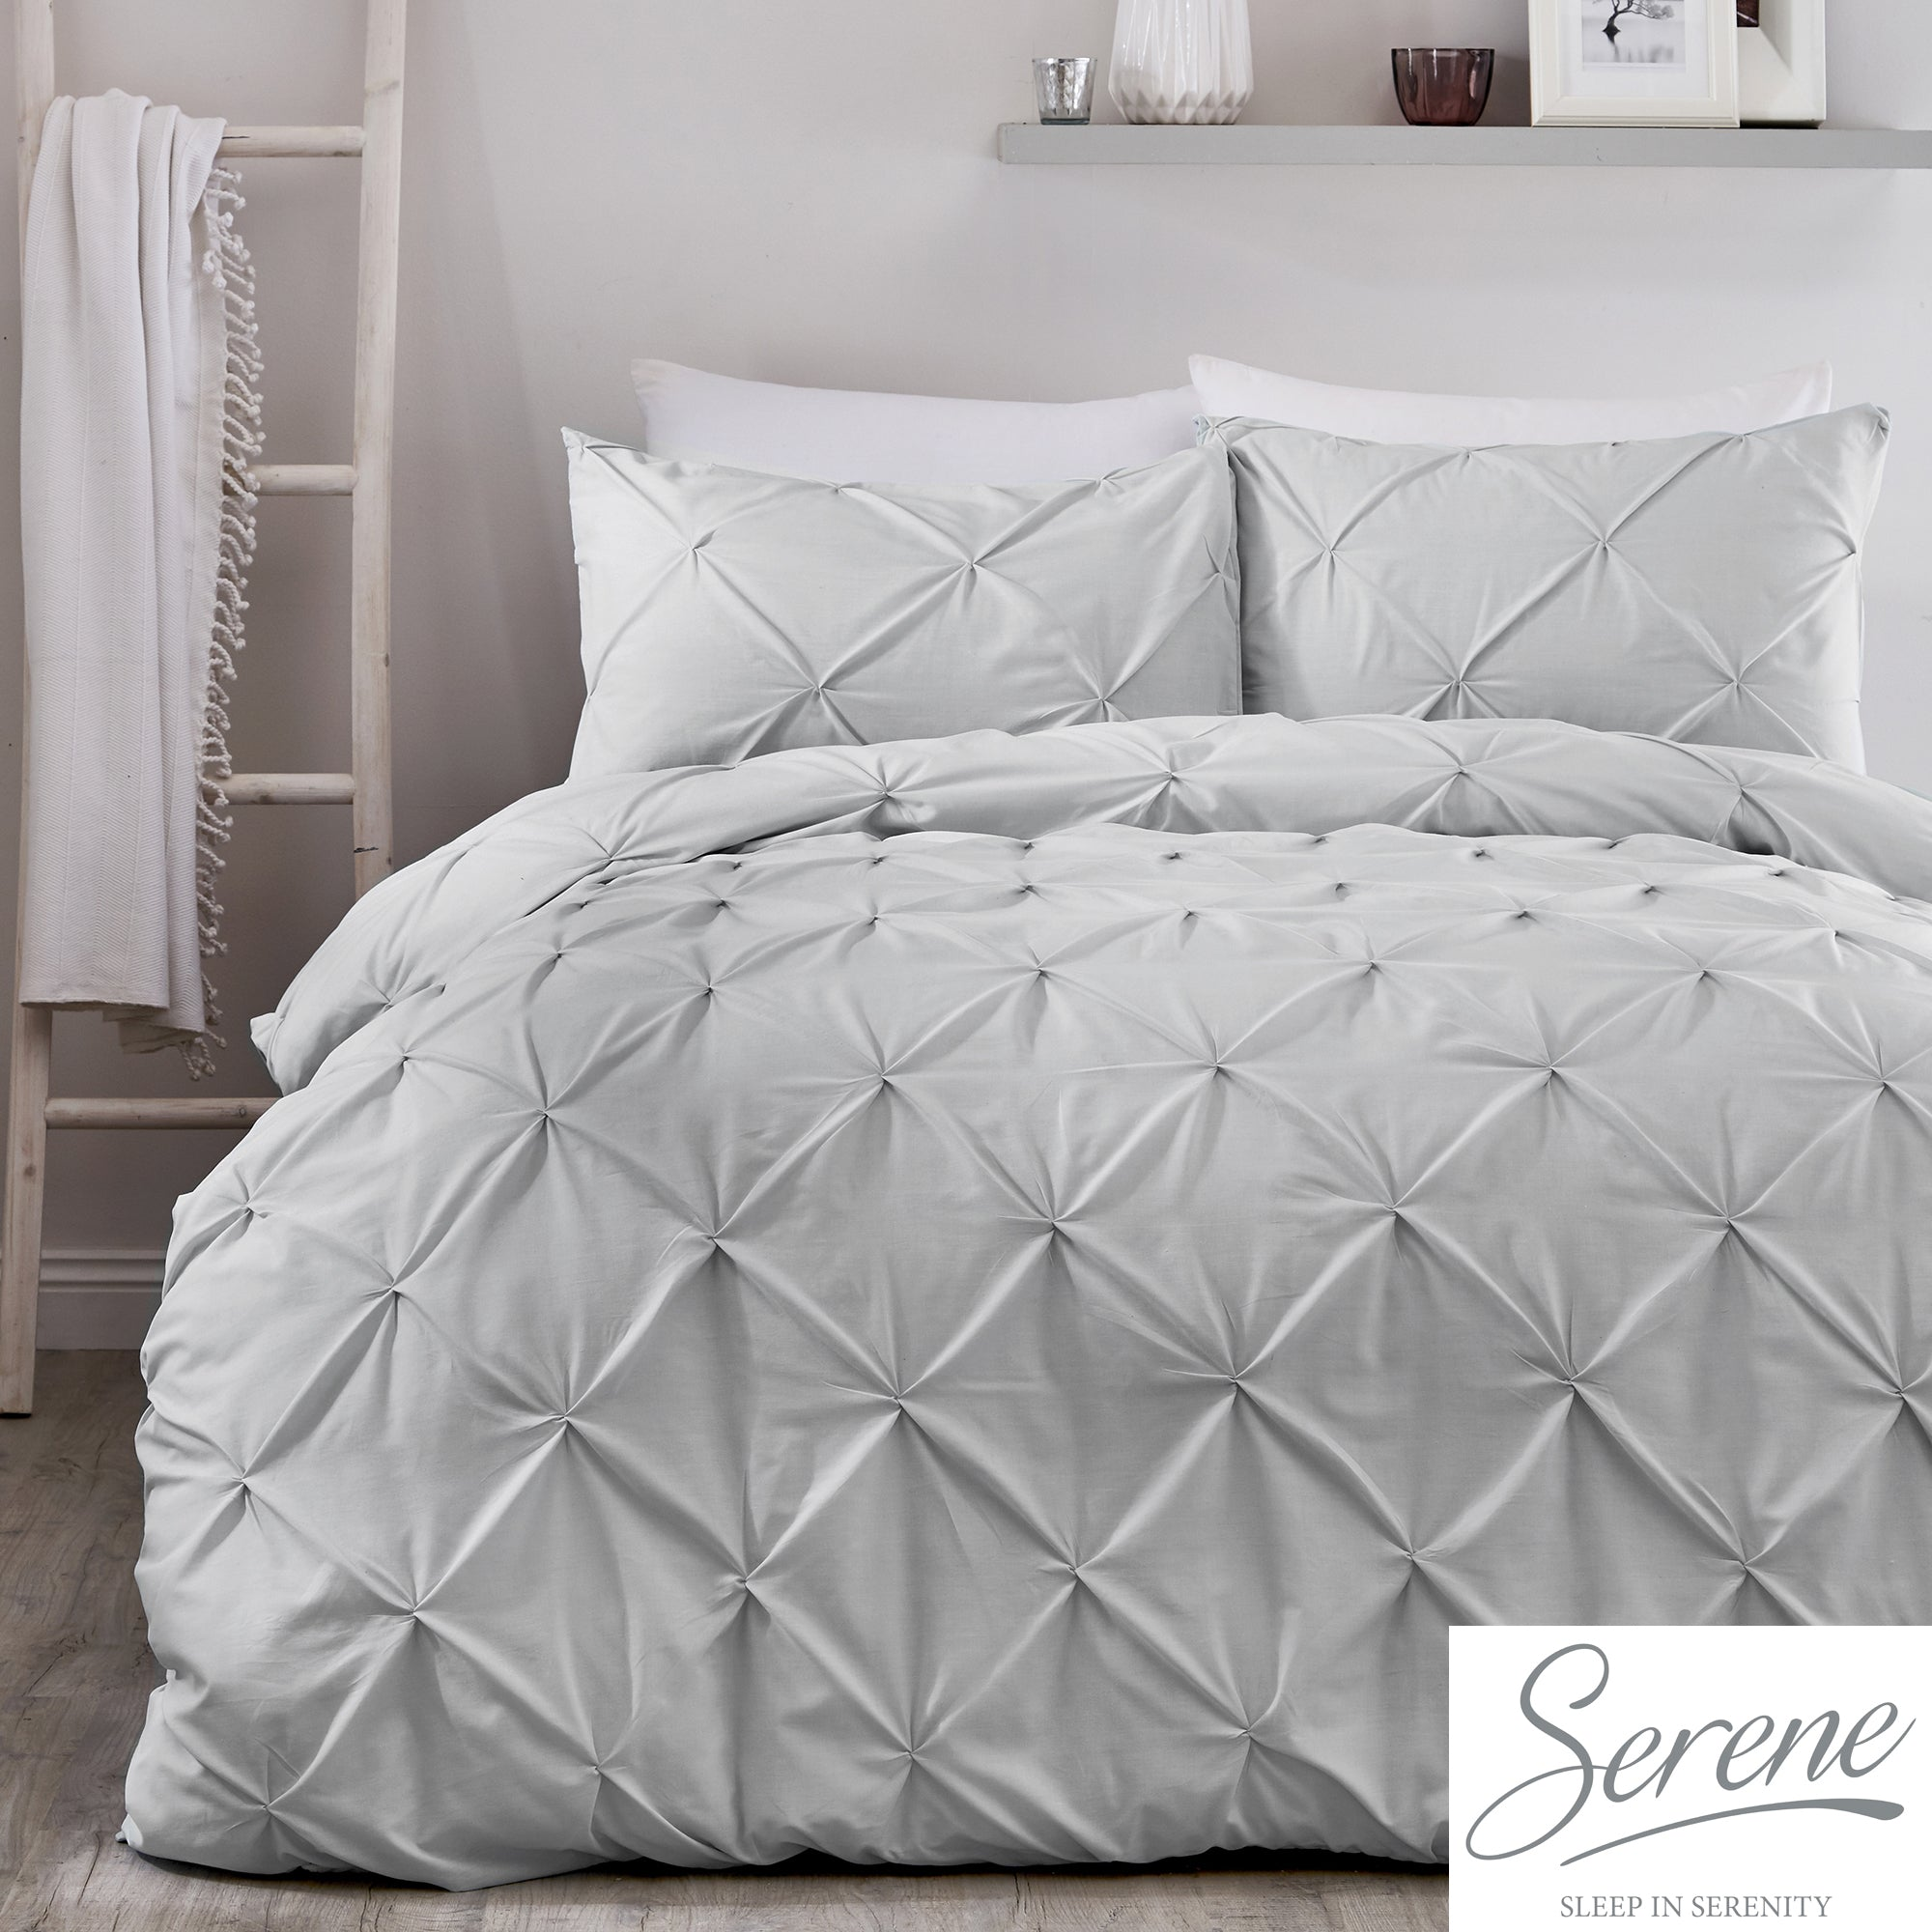 Lara - Pleated Duvet Cover Set in Silver - by Serene